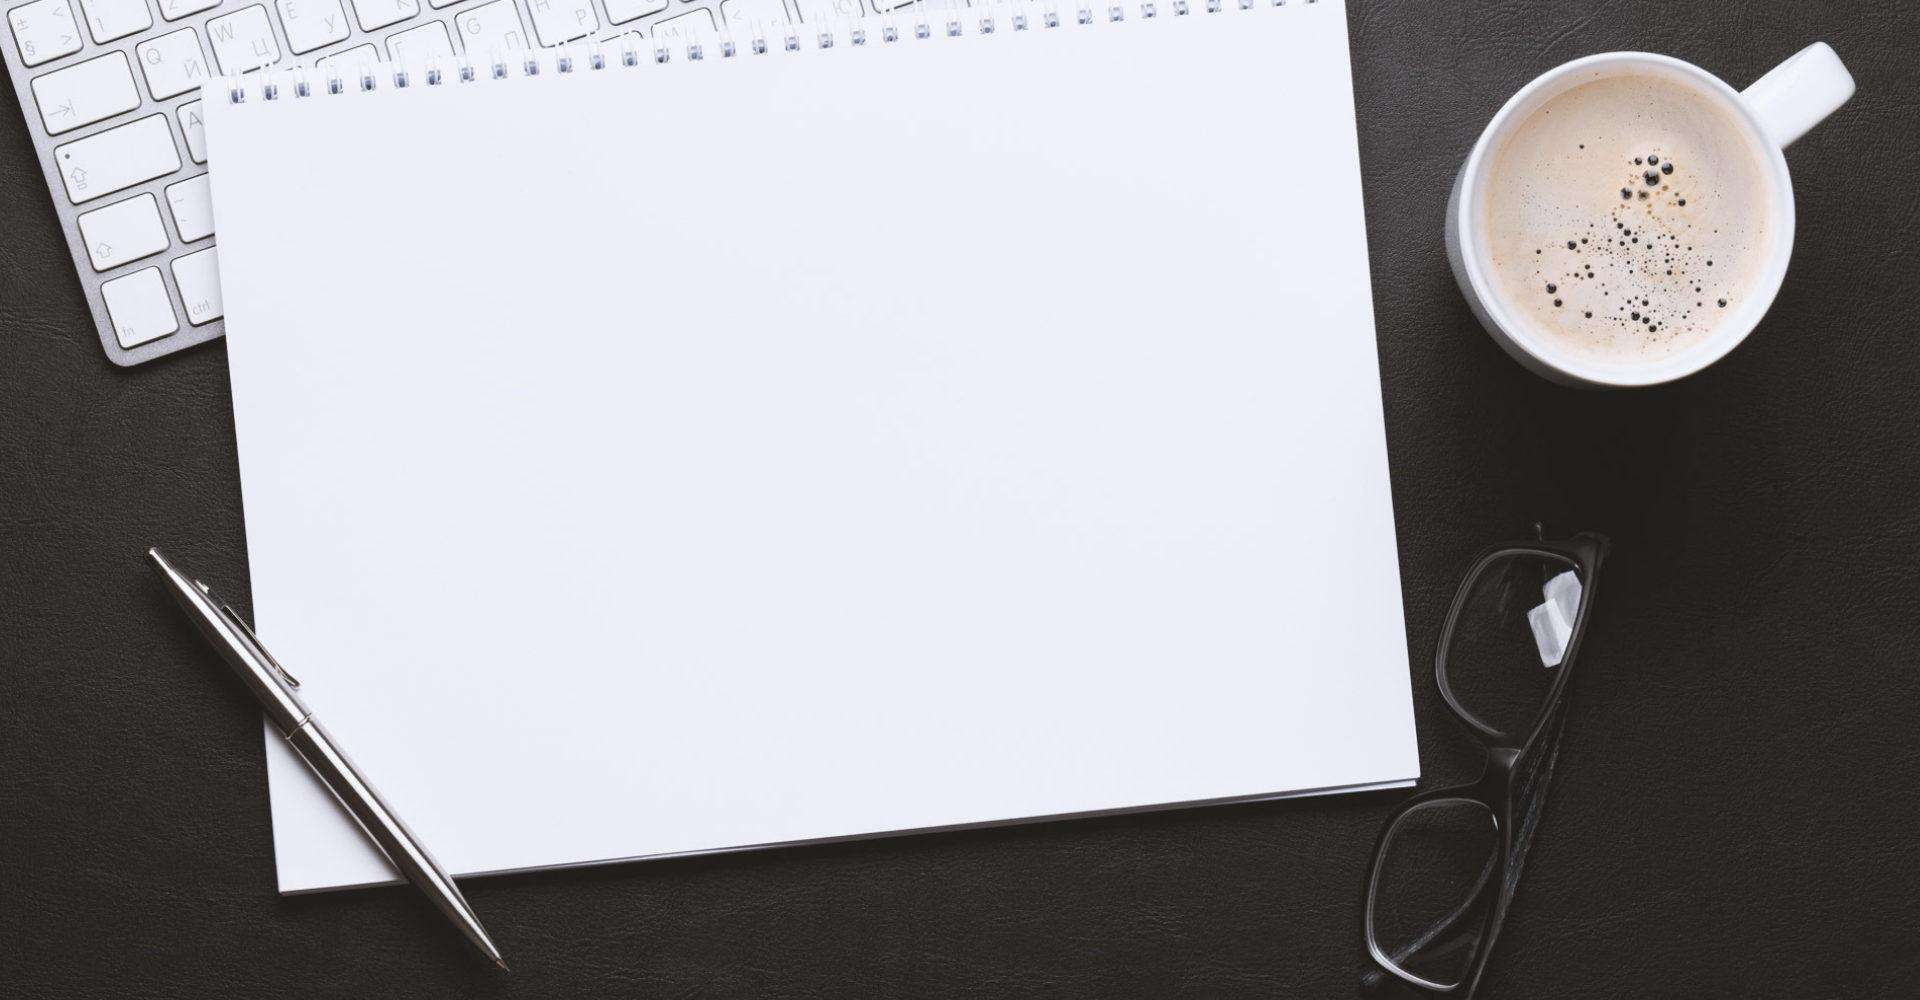 A top-down view of a blank notepad on a desk